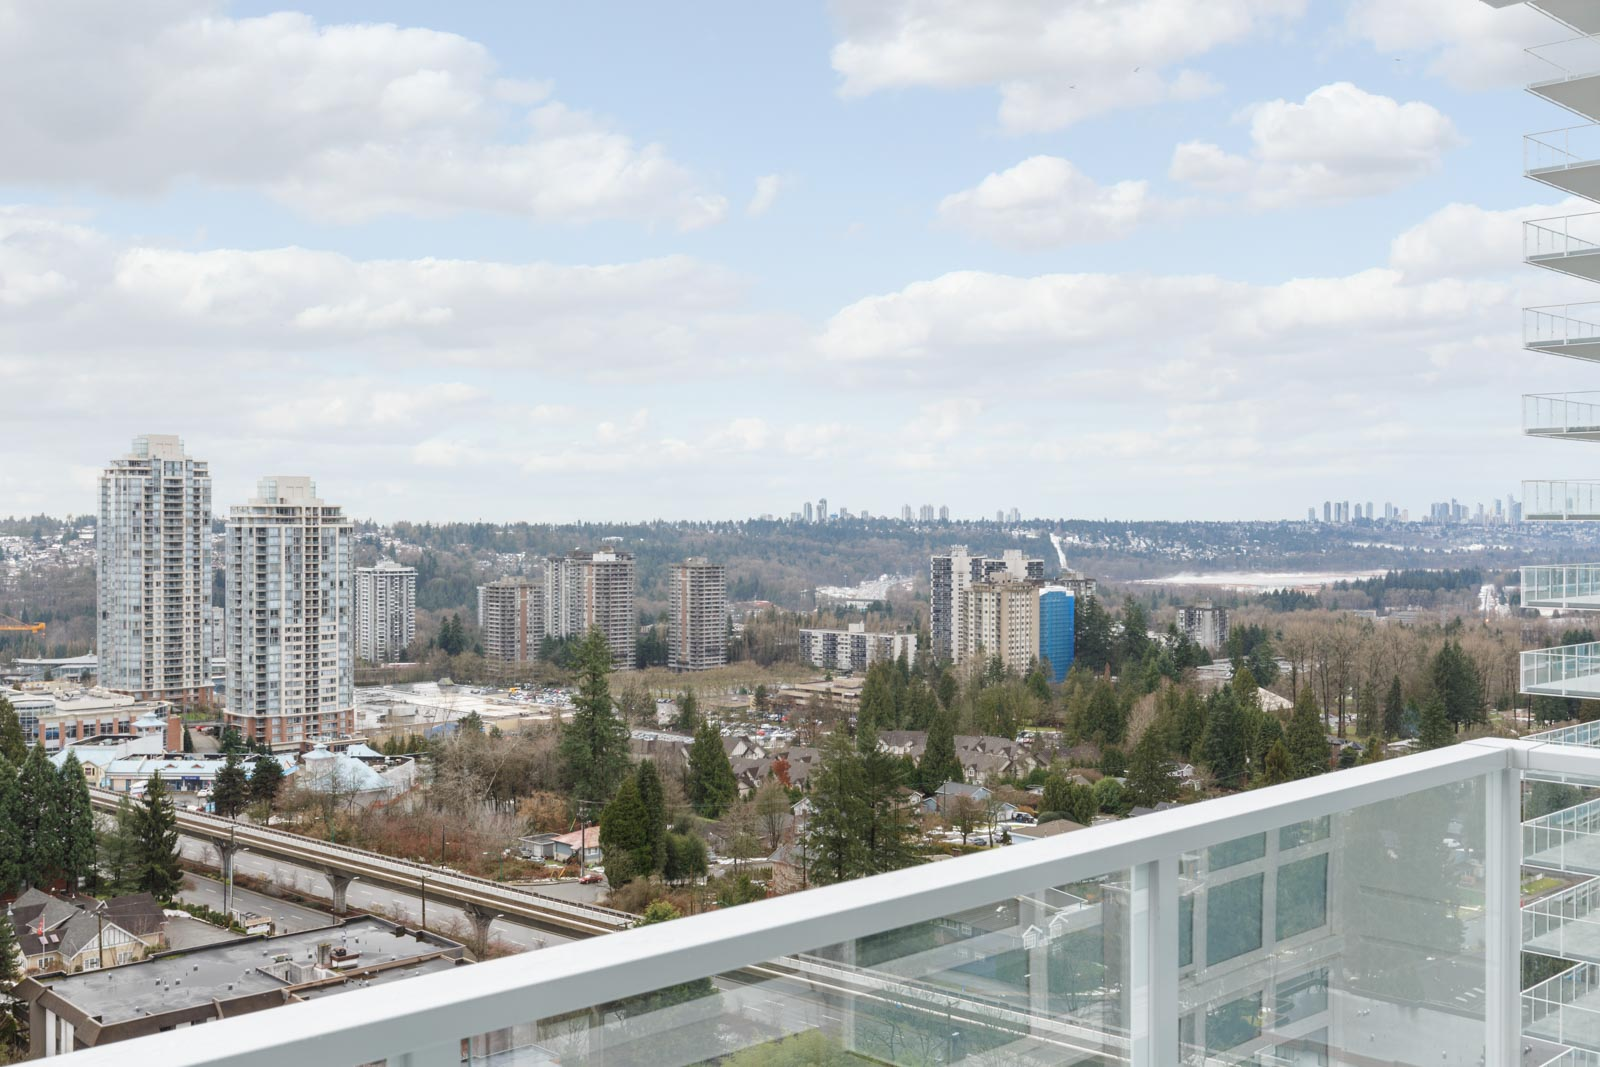 view from balcony with white railing of condo in coquitlam bc with some trees in the foreground and clouds in the blue sky